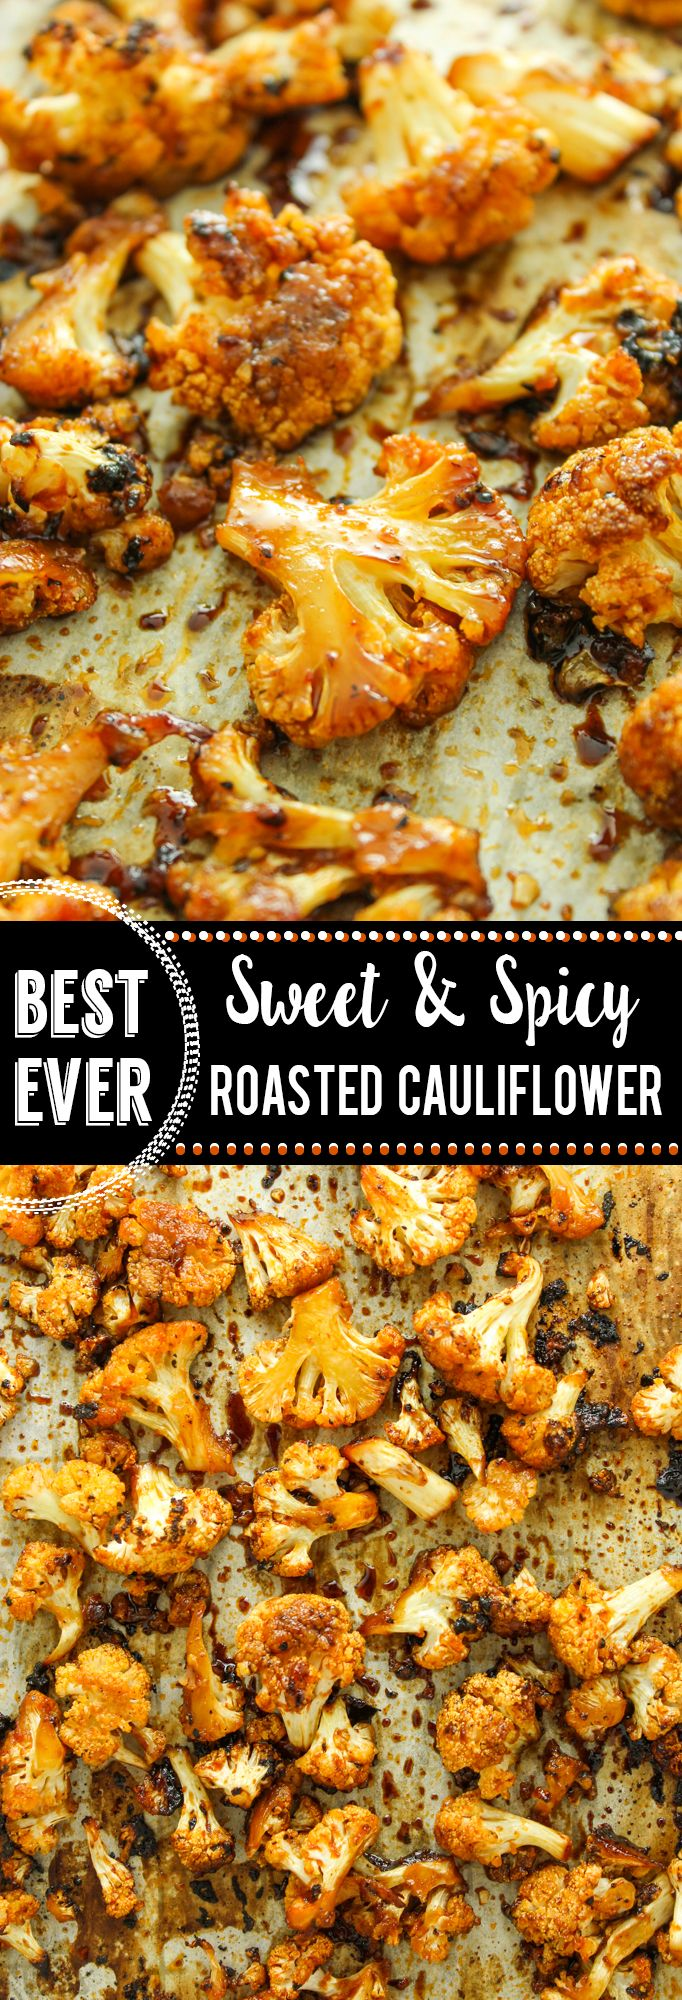 Sweet And Spicy Roasted Cauliflower From The Fitchen Recipe Roasted Side Dishes Recipes Side Dishes Easy